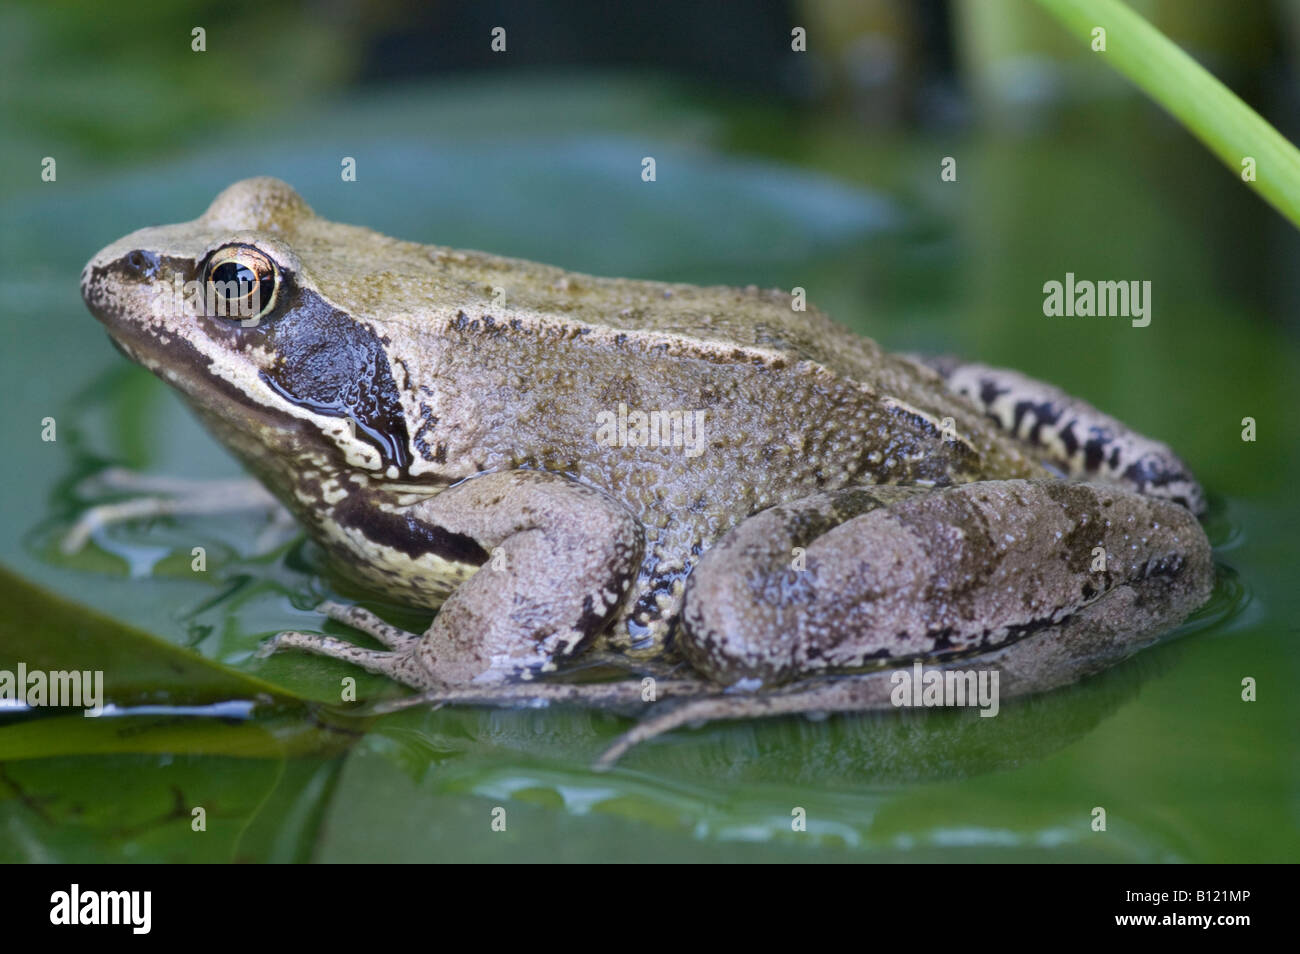 Common Frog, Rana temporaria, on a water-lily leaf - Stock Image